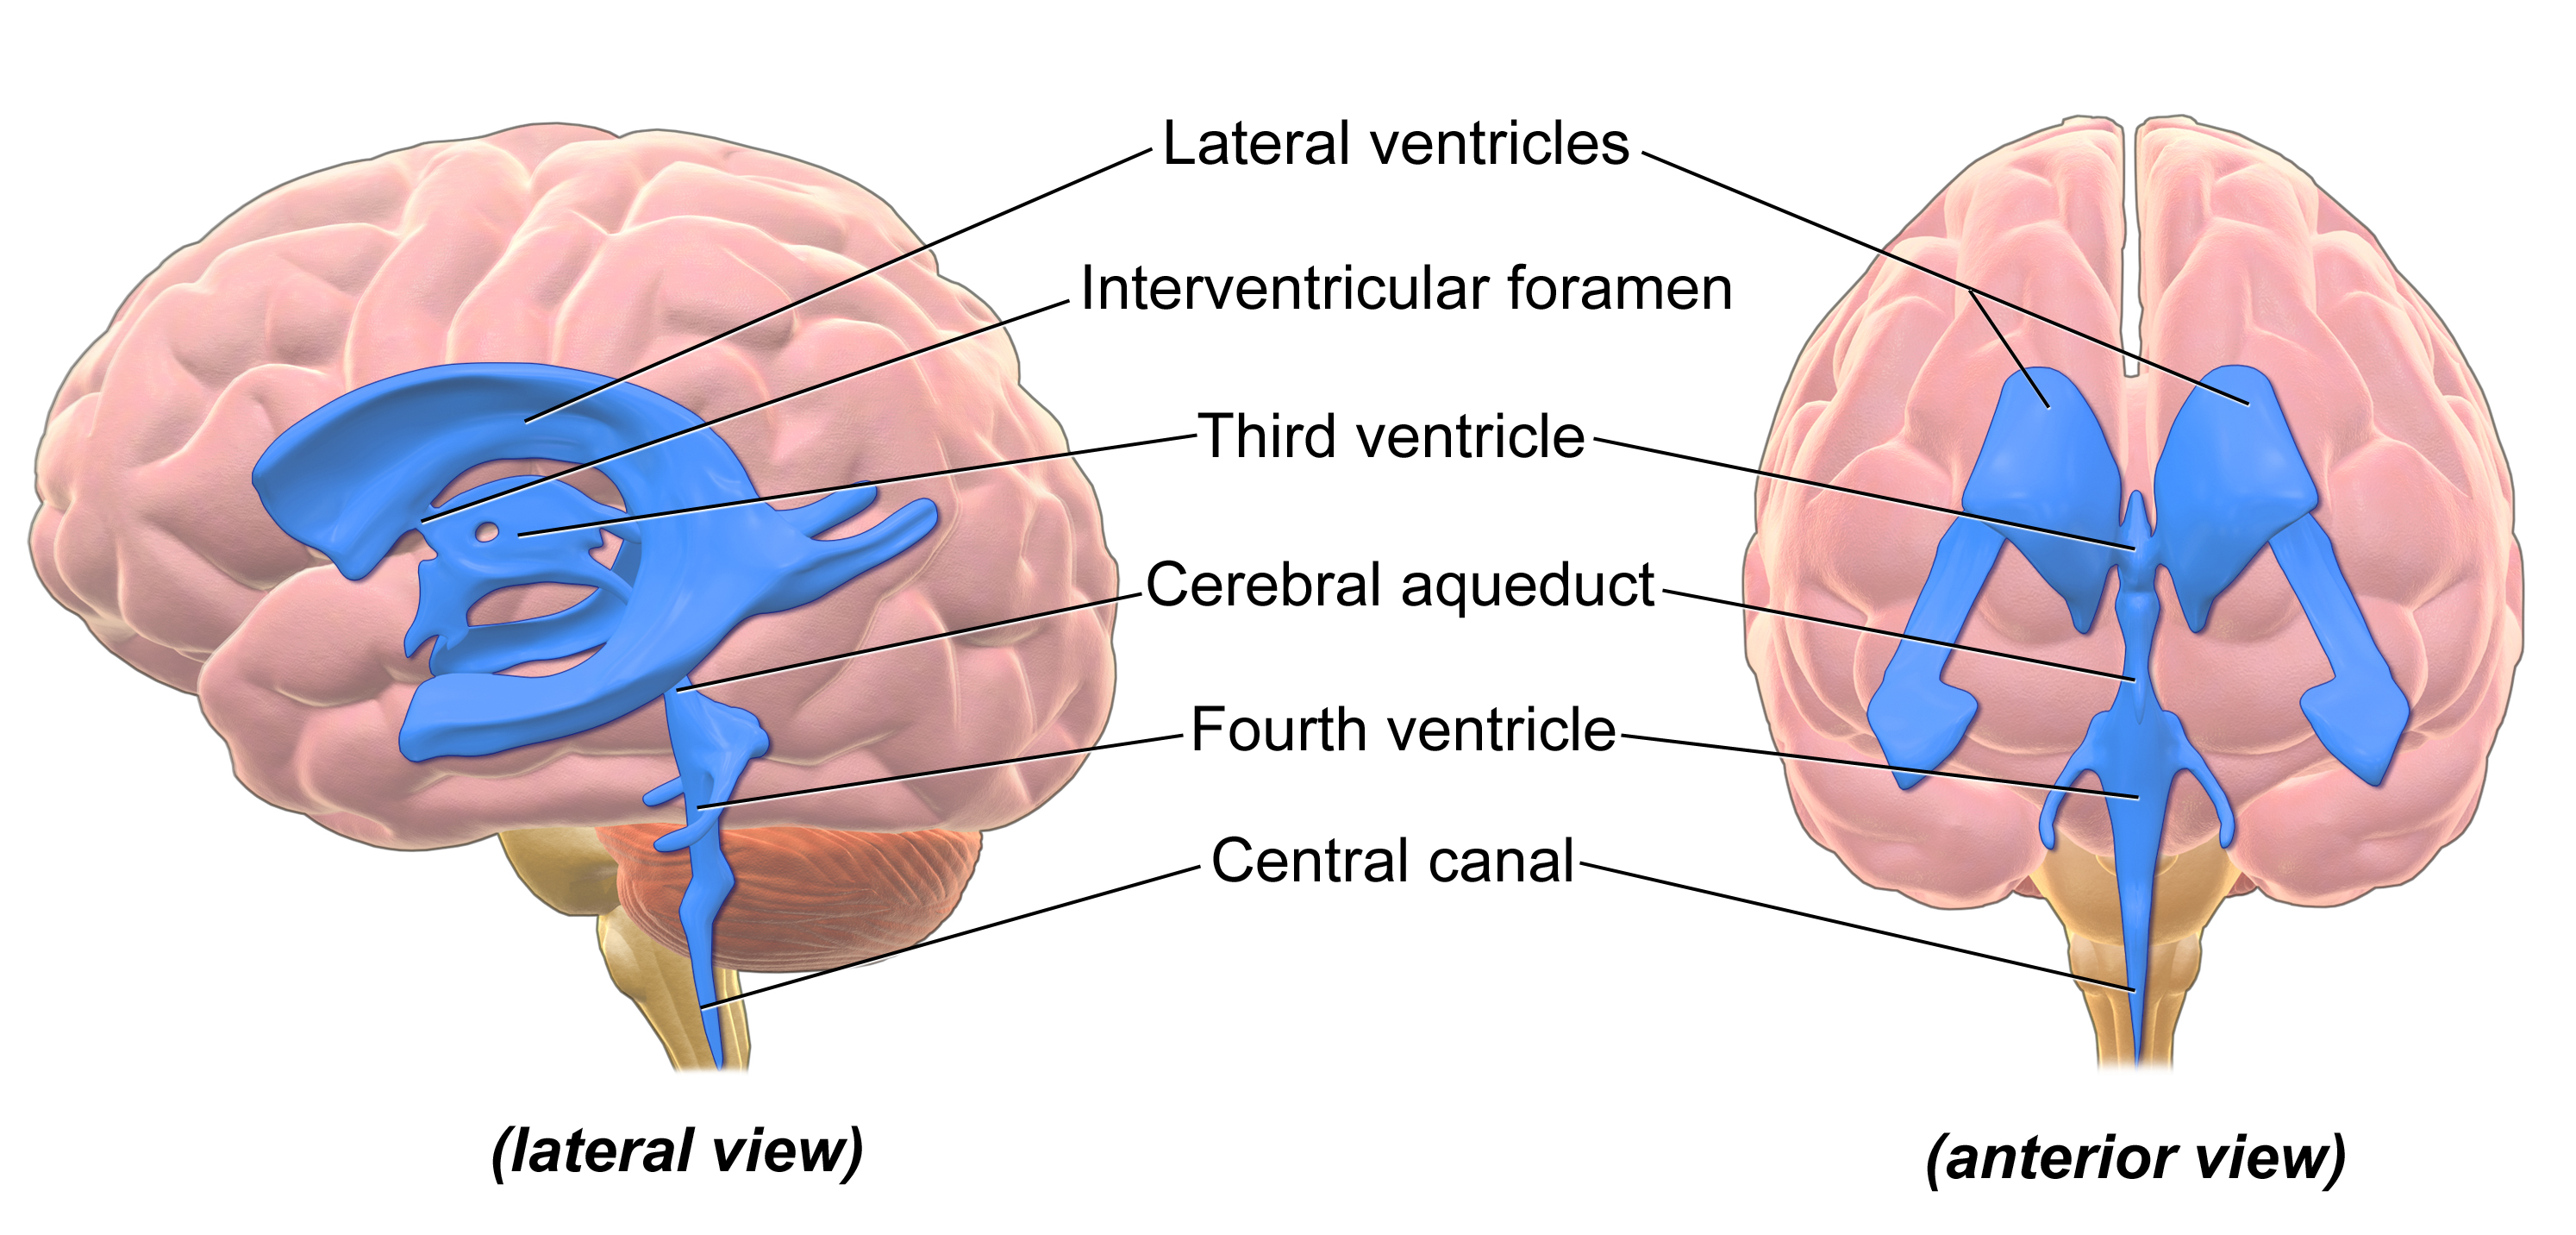 1000 images about anatomy & physiology diagrams on pinterest  : brain ventricles diagram - findchart.co